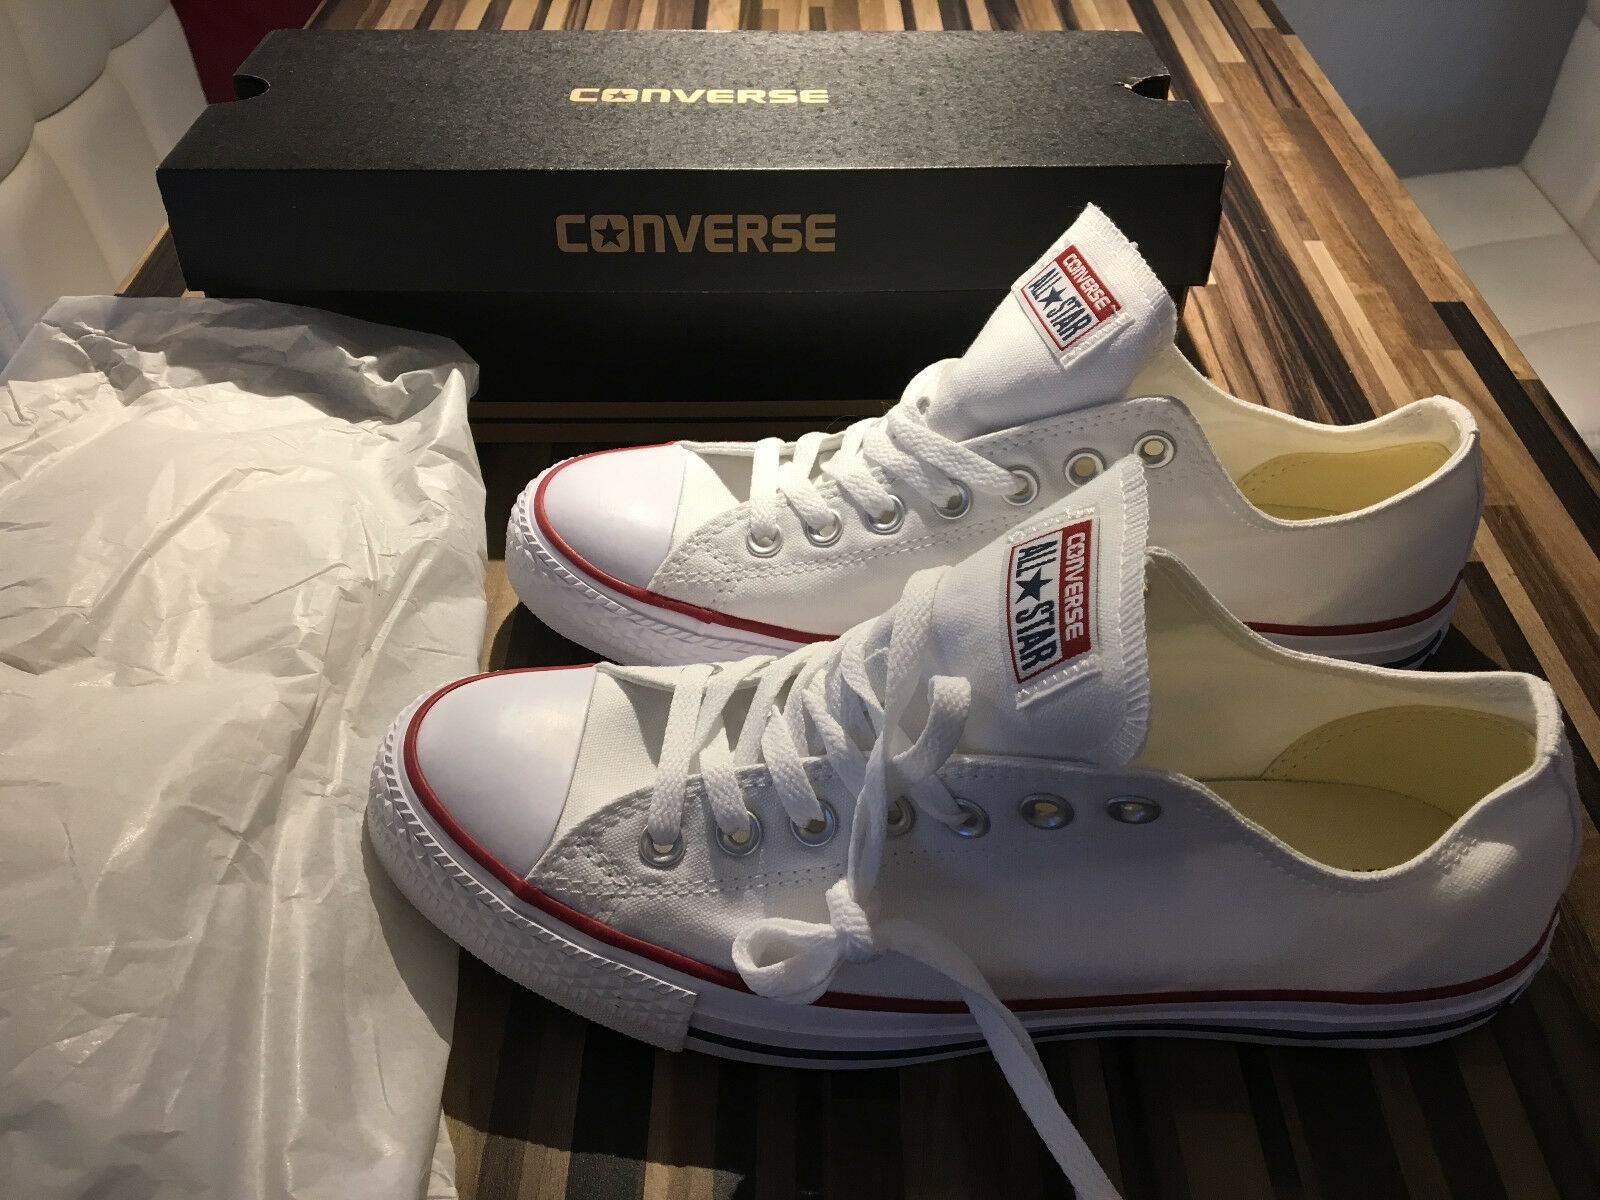 Converse Chucks All Star White Schuhe Sneaker Herren 43 US 9.5 Weiß - TOP Neu